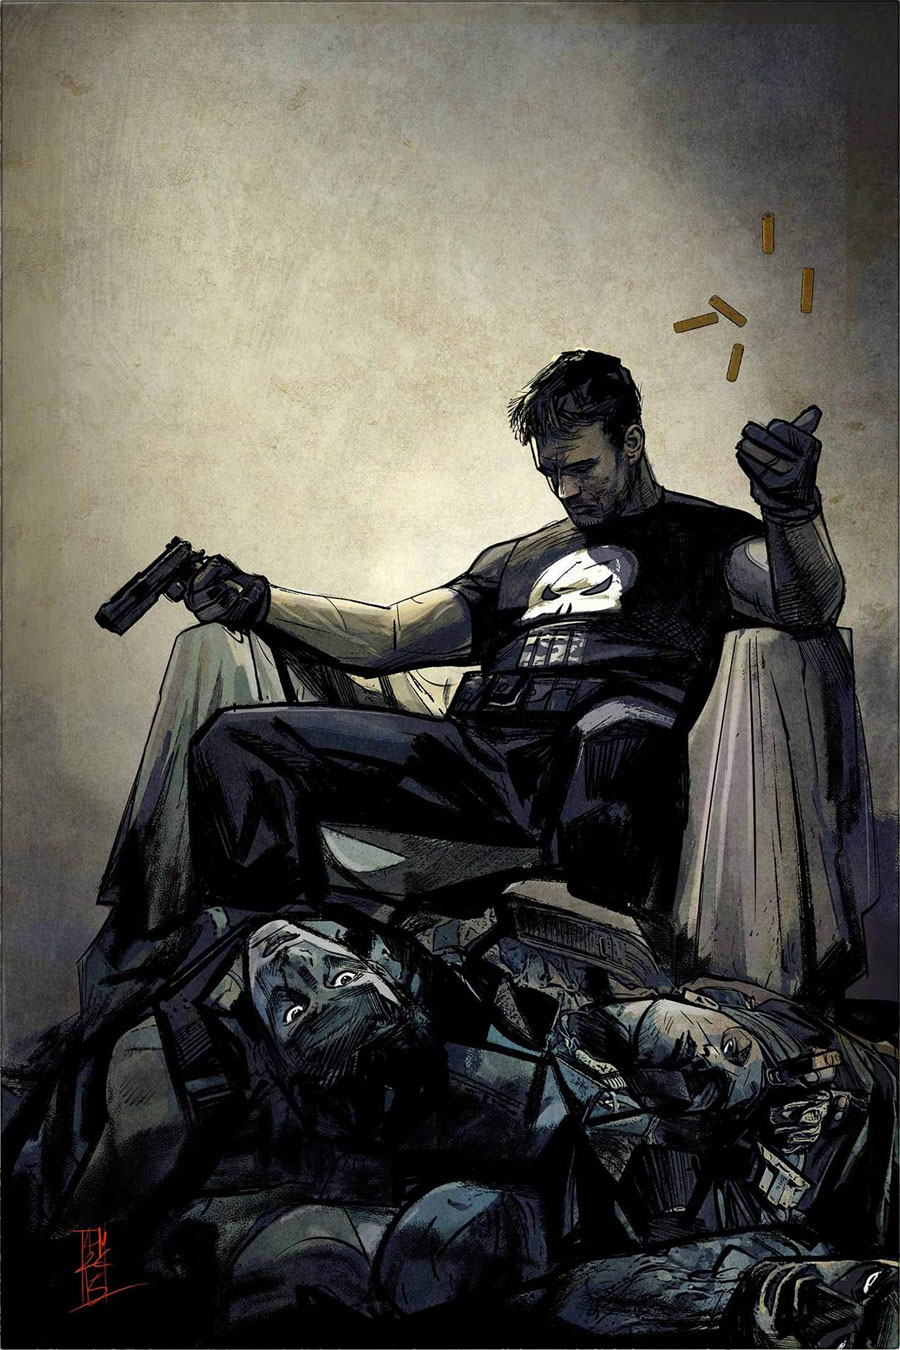 The-Punisher-1-Maleev-Variant-26826